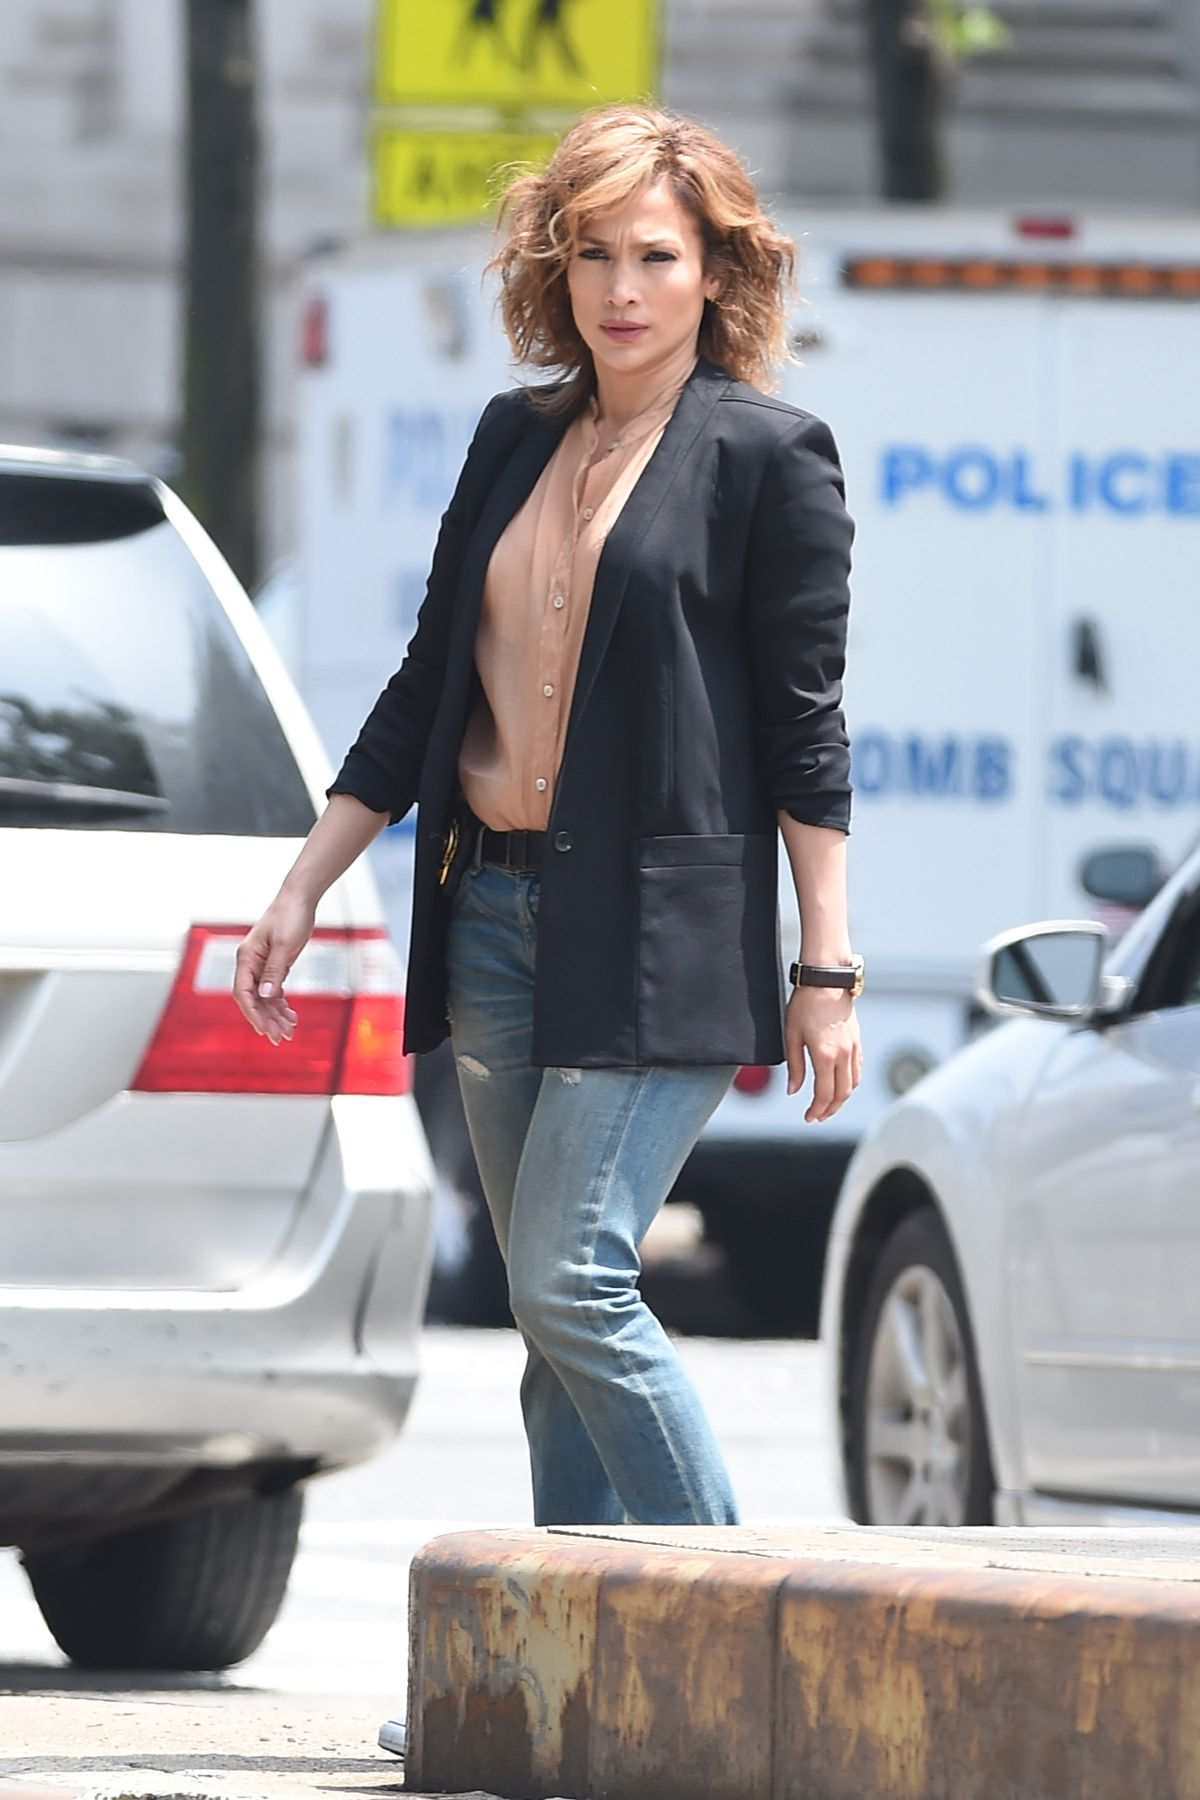 jennifer-lopez-on-the-set-of-shades-of-blue-in-new-york-06-15-2015_1